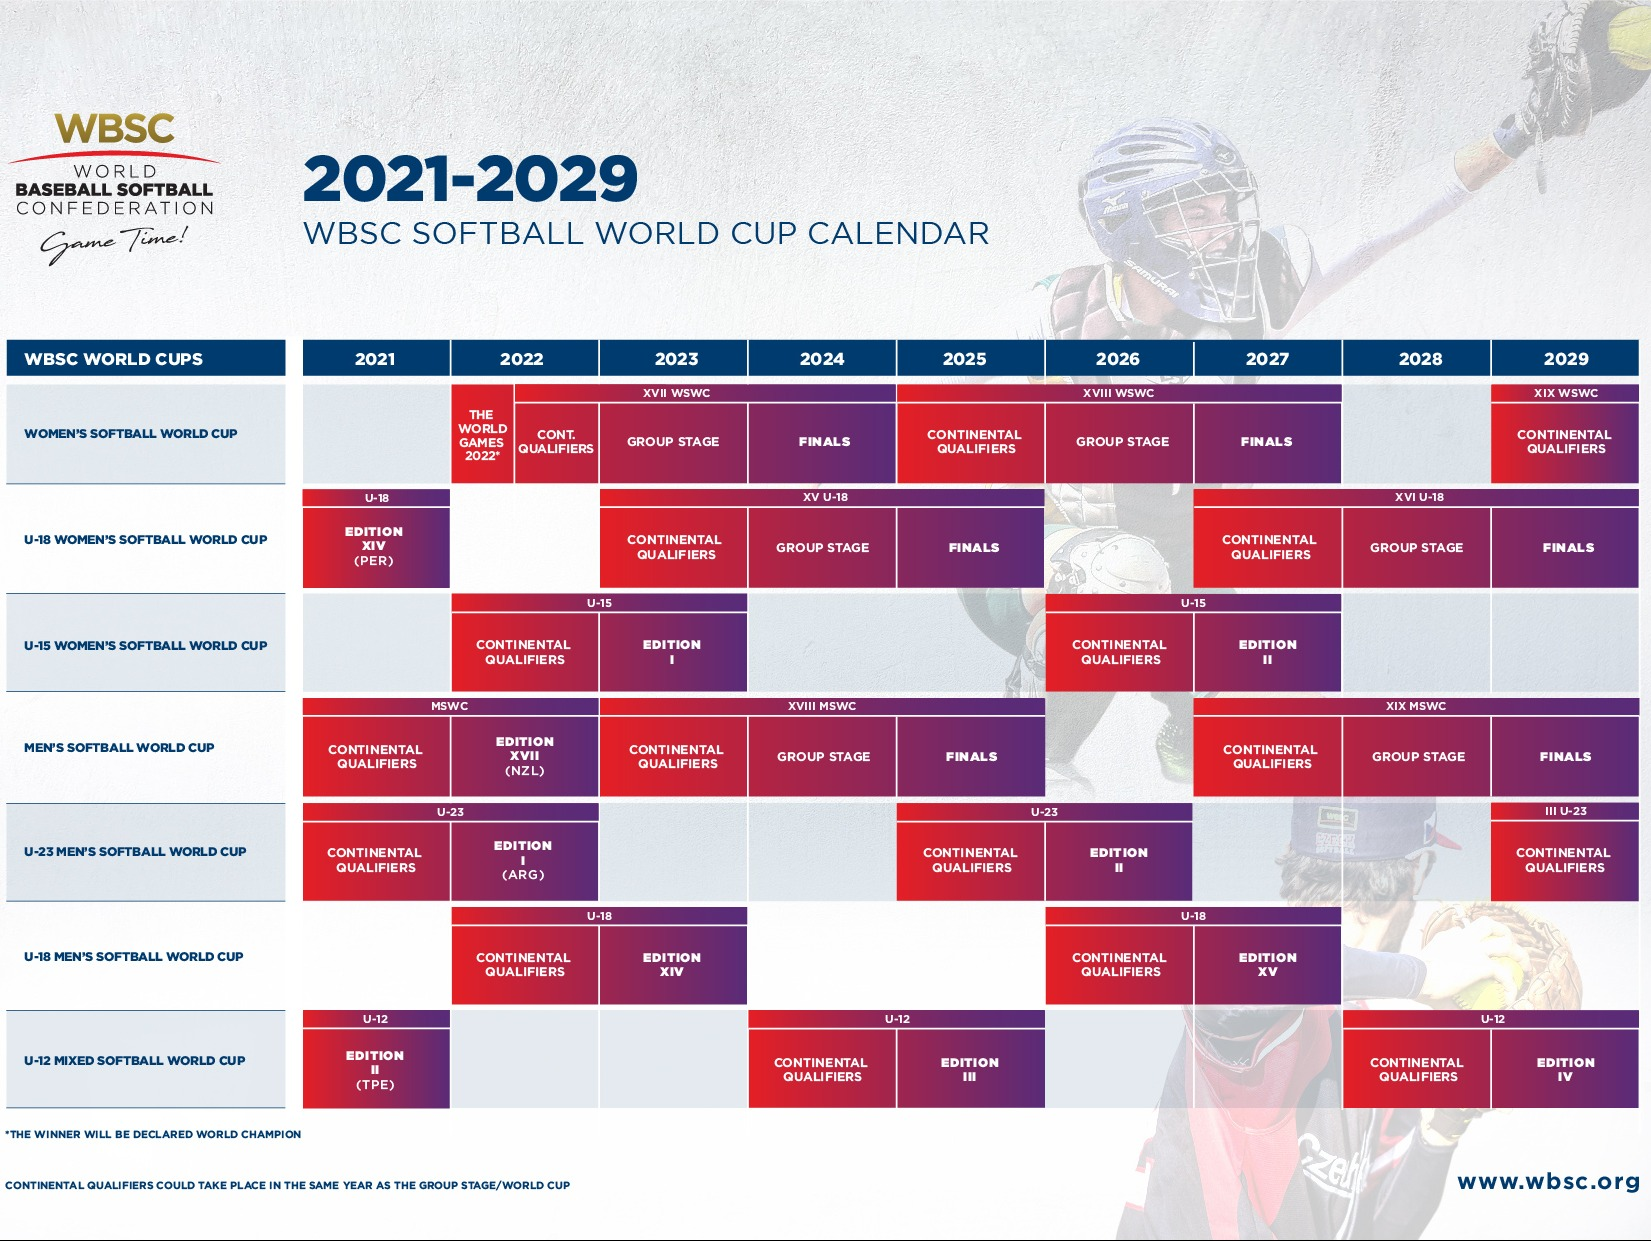 WBSC launches new Softball World Cup format, 2021-2029 global schedule